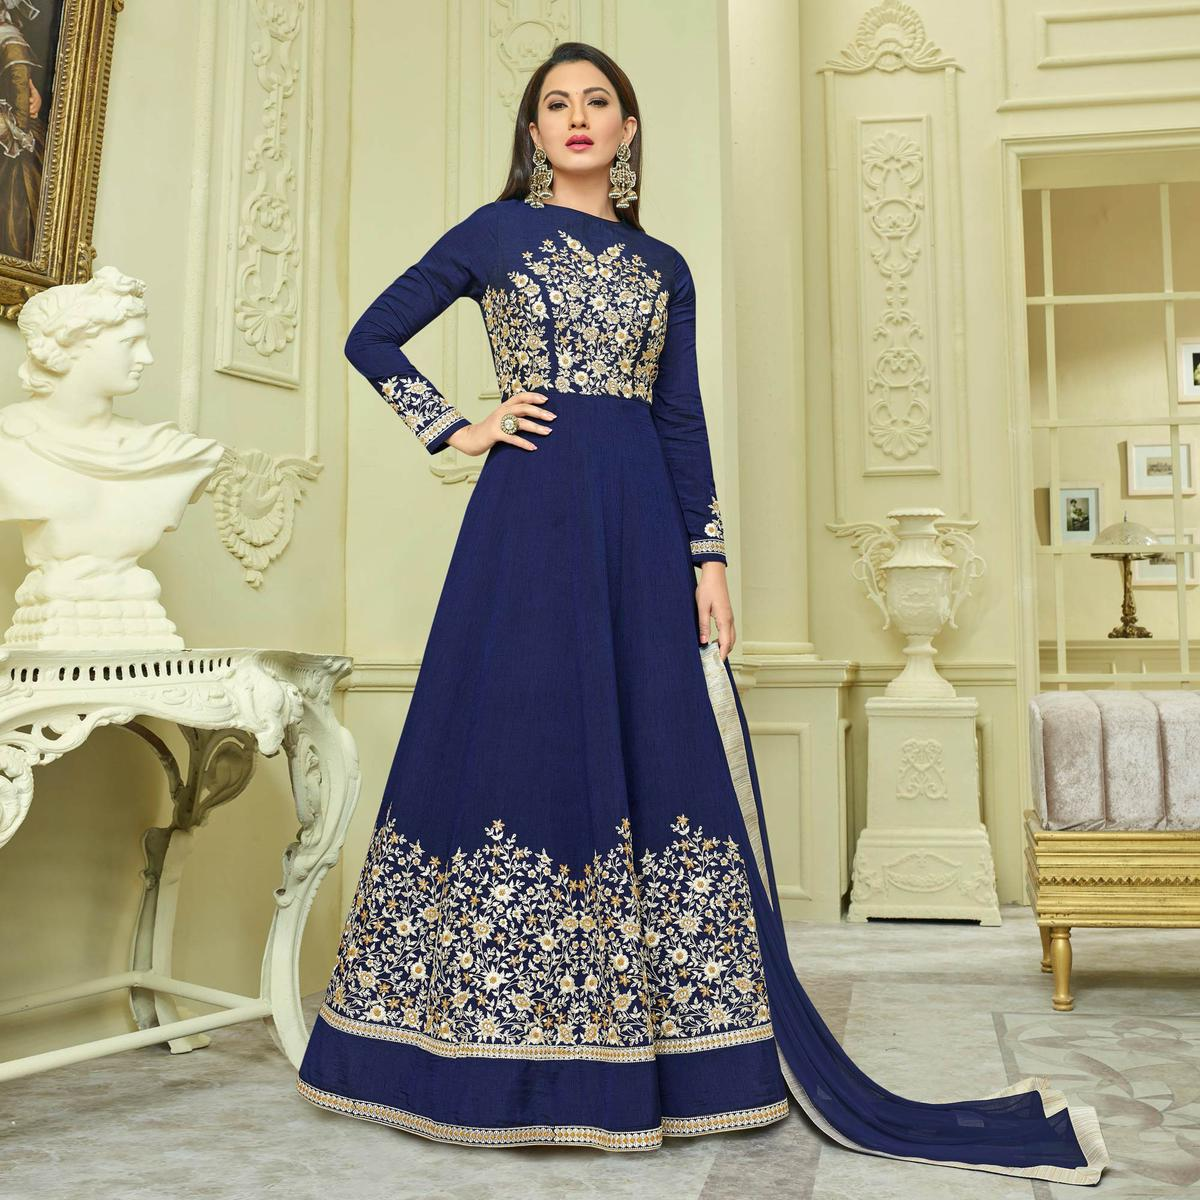 Dazzling Navy Blue Colored Designer Embroidered Heavy Mulberry Silk Anarkali Suit